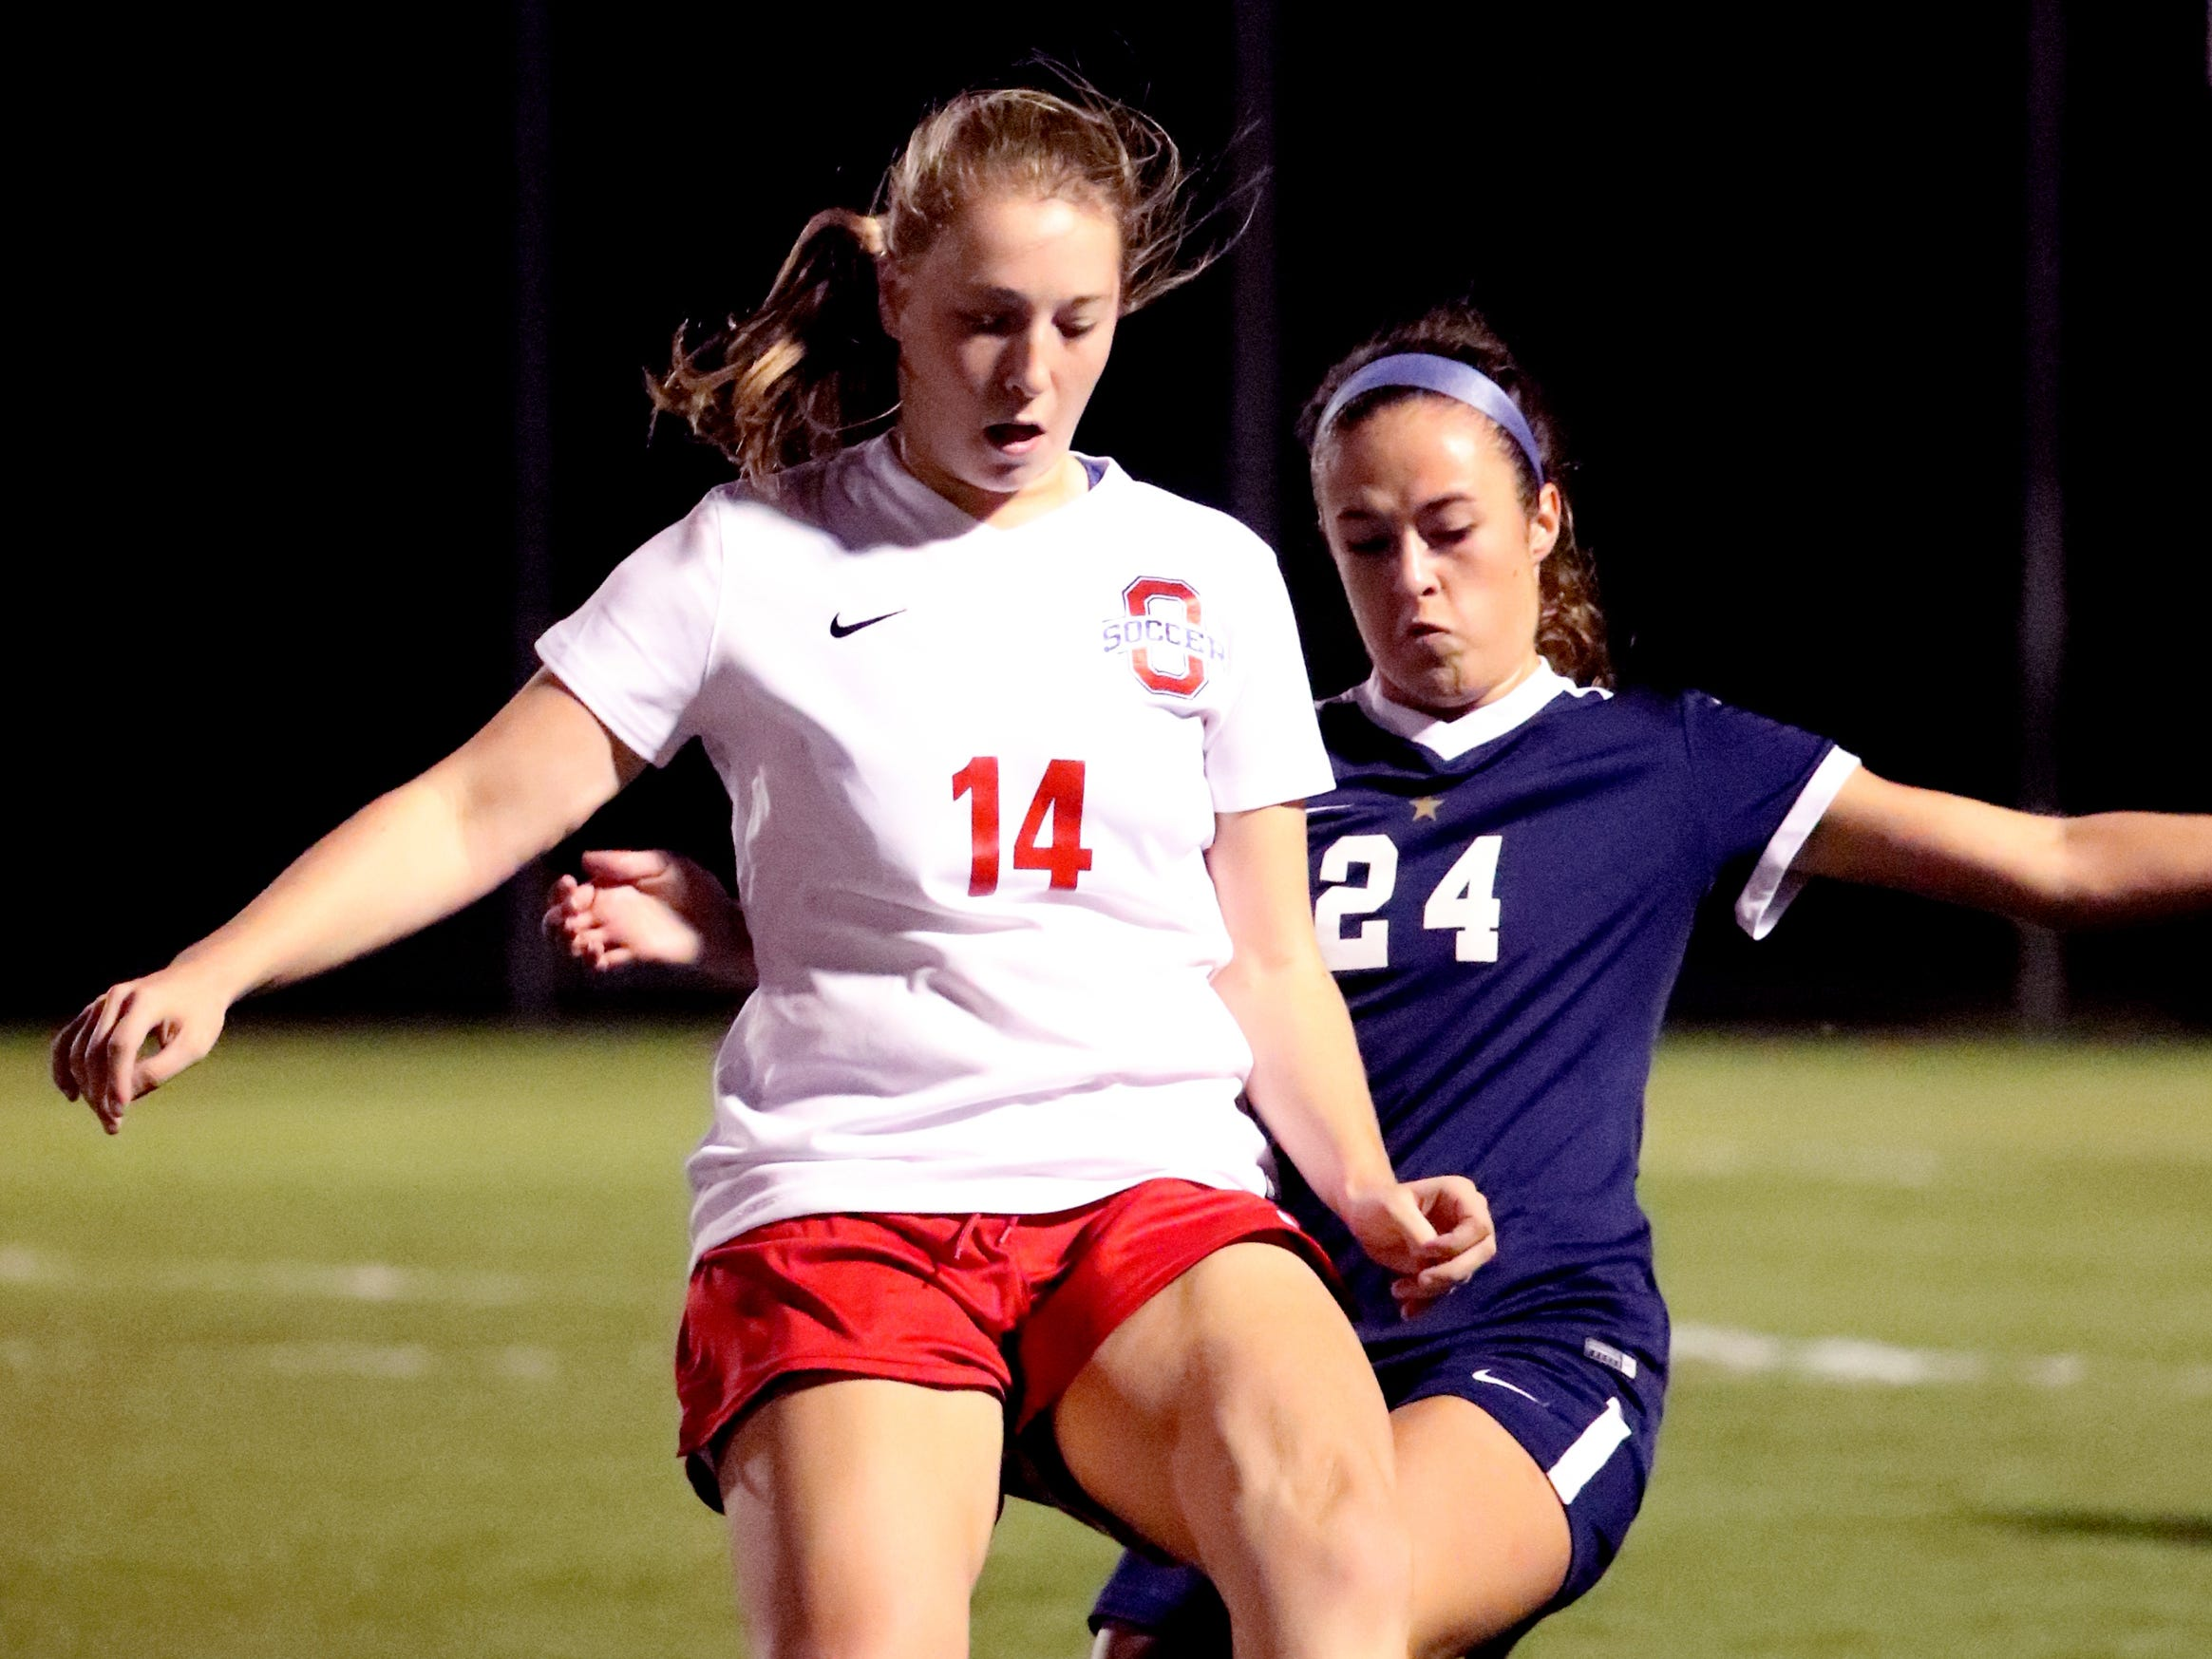 Oakland's Mary Grace Wright (14) and Siegel's Kirsten Wojciechowski (24) go after the same ball in the semifinals of the 7-AAA Soccer Tournament, on Tuesday,  Oct. 09, 2018 at the Siegel Soccer Complex.